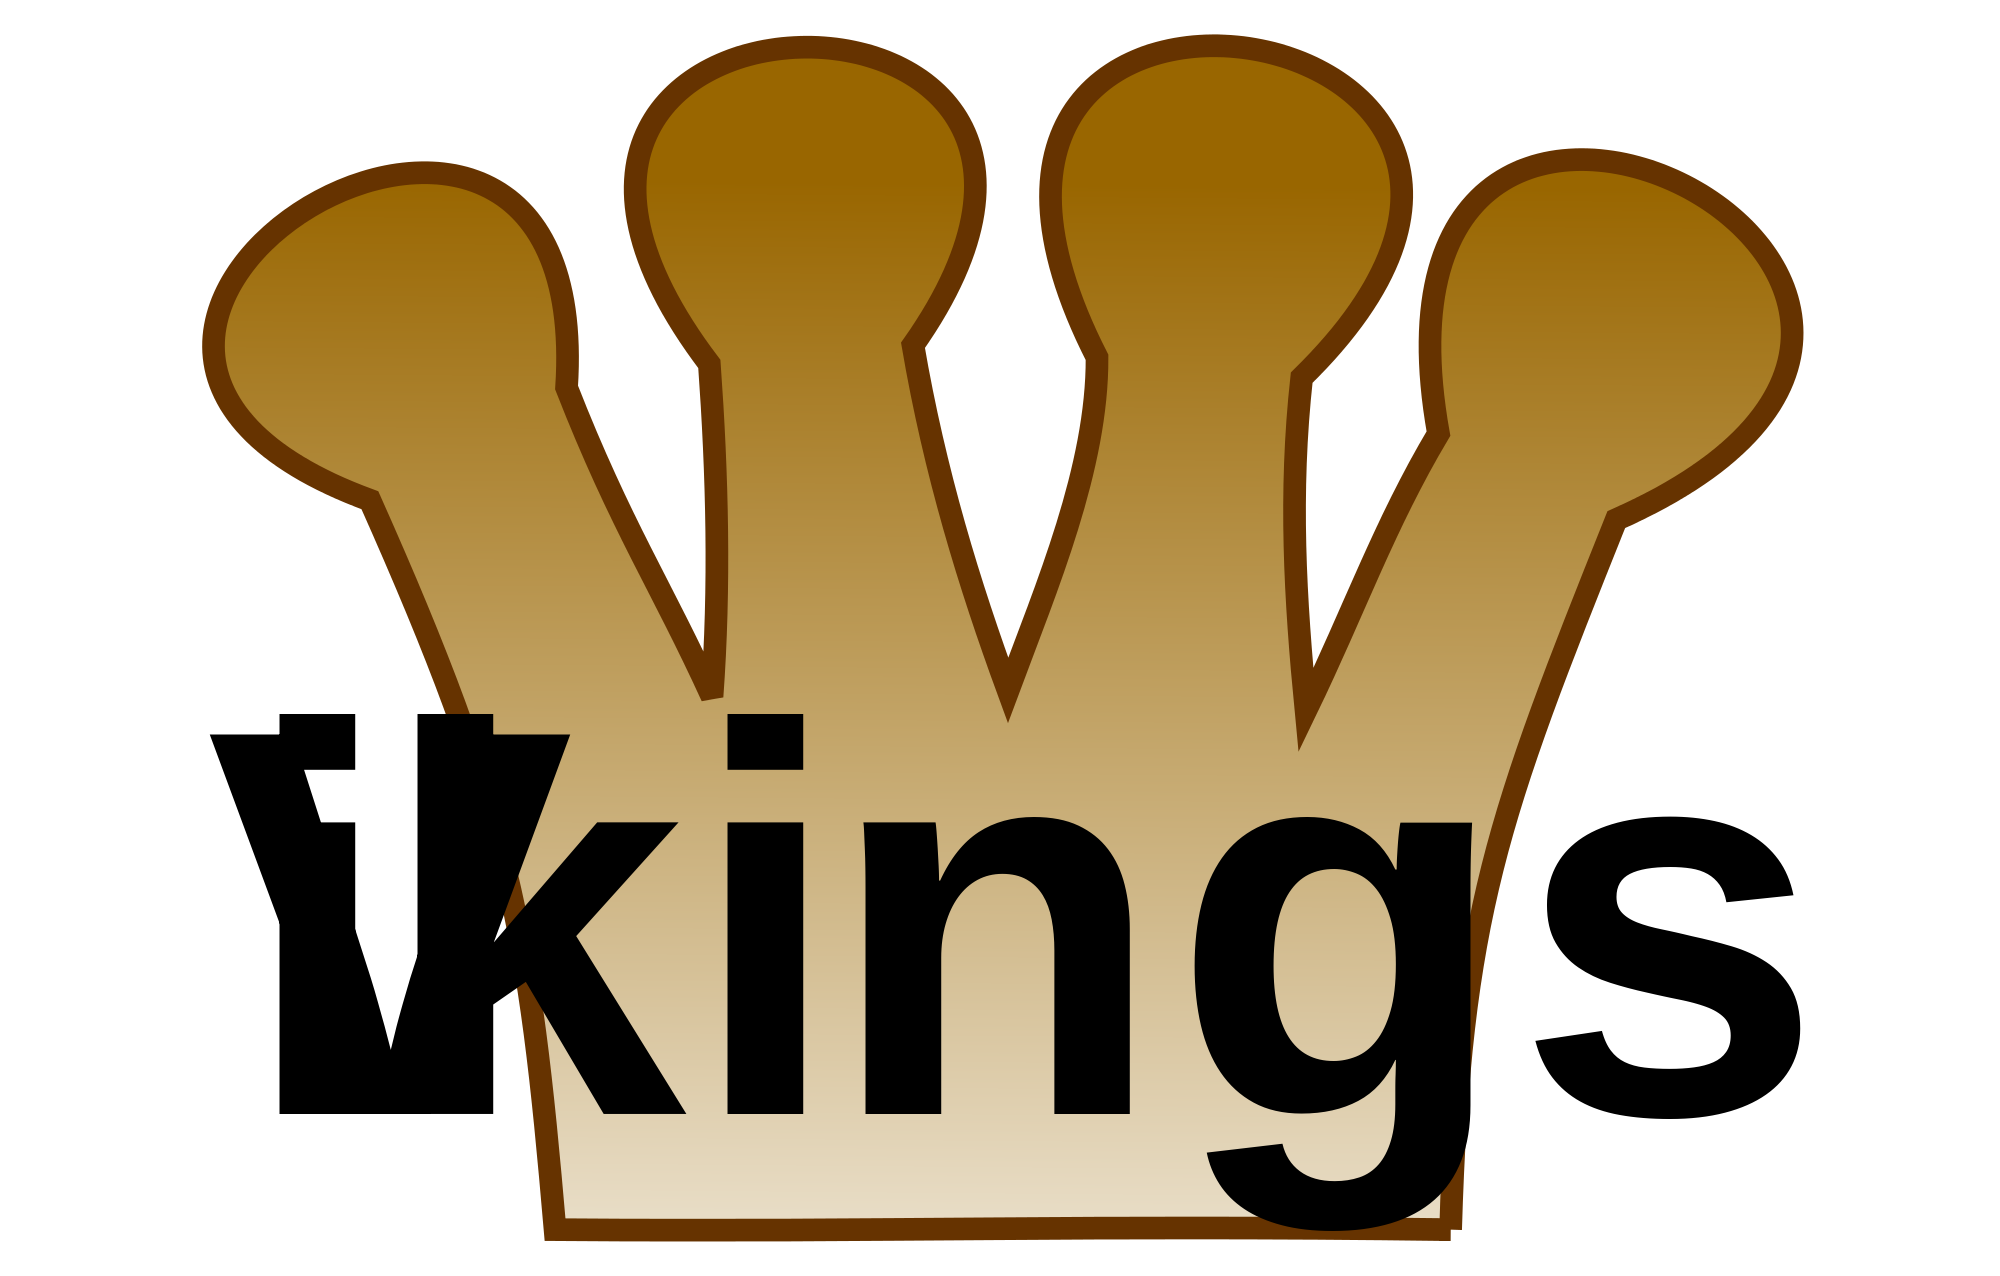 Vikings svg. File king of the